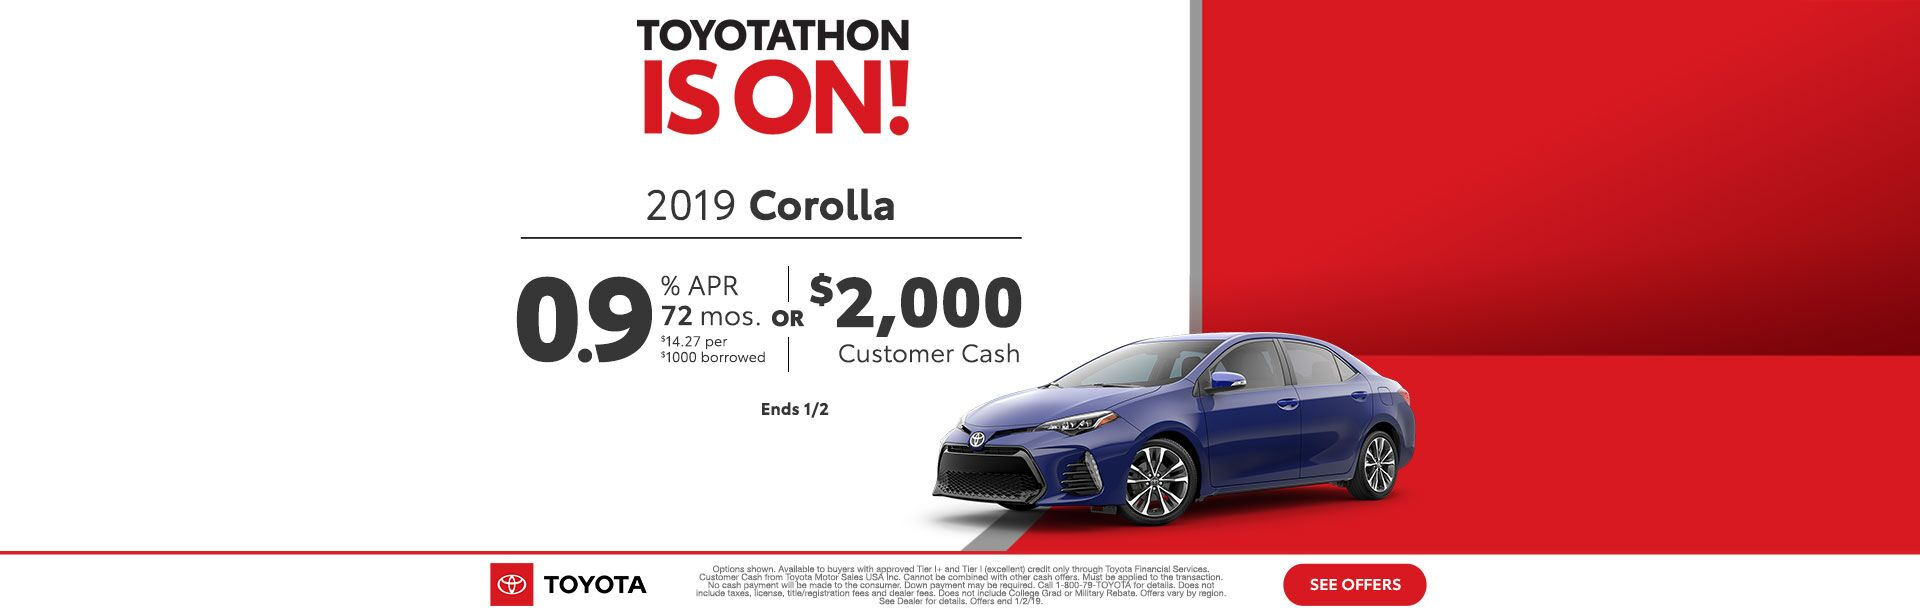 Toyotathon is on Corolla Dec 2018